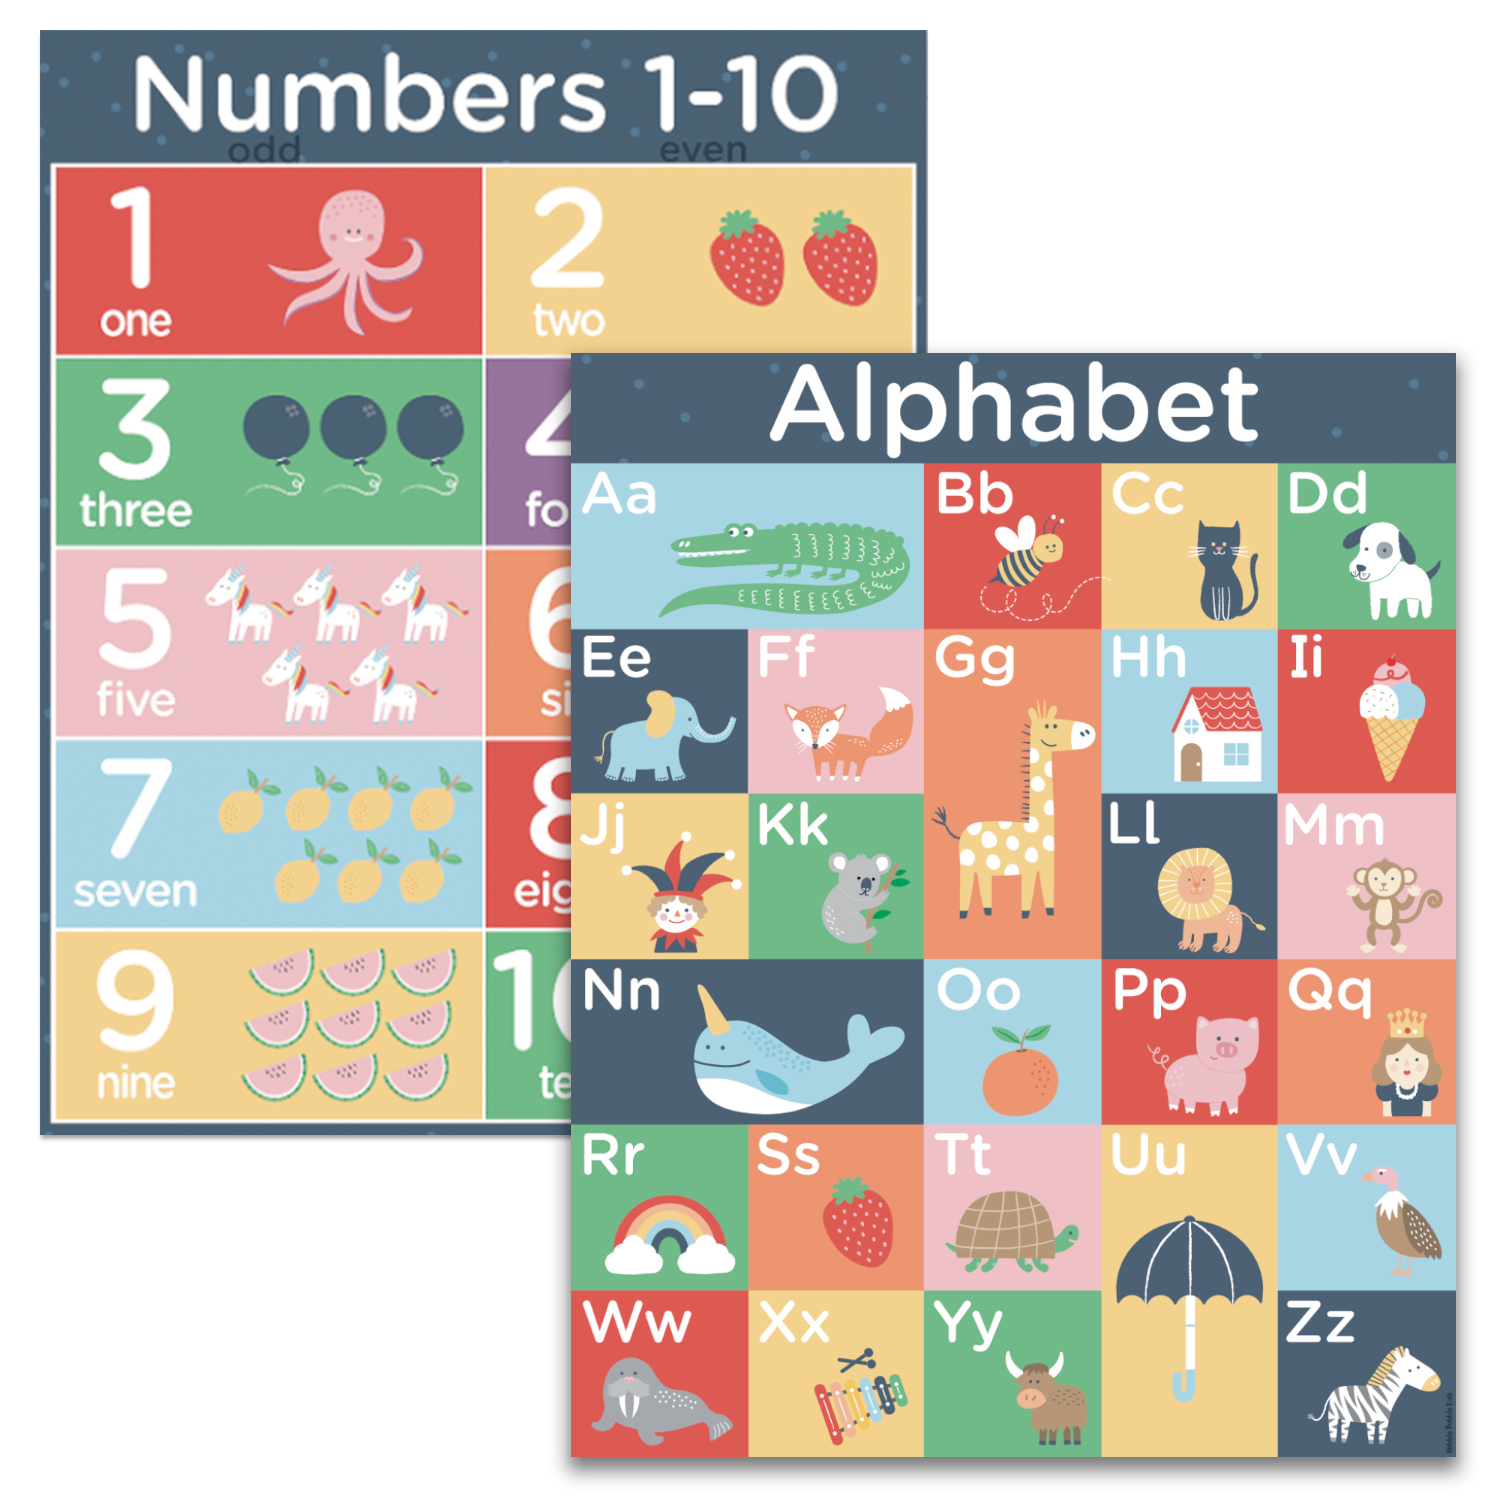 Alphabet 1 Learning Kids School Poster ABC Teaching Symbols Letters Colour Photo